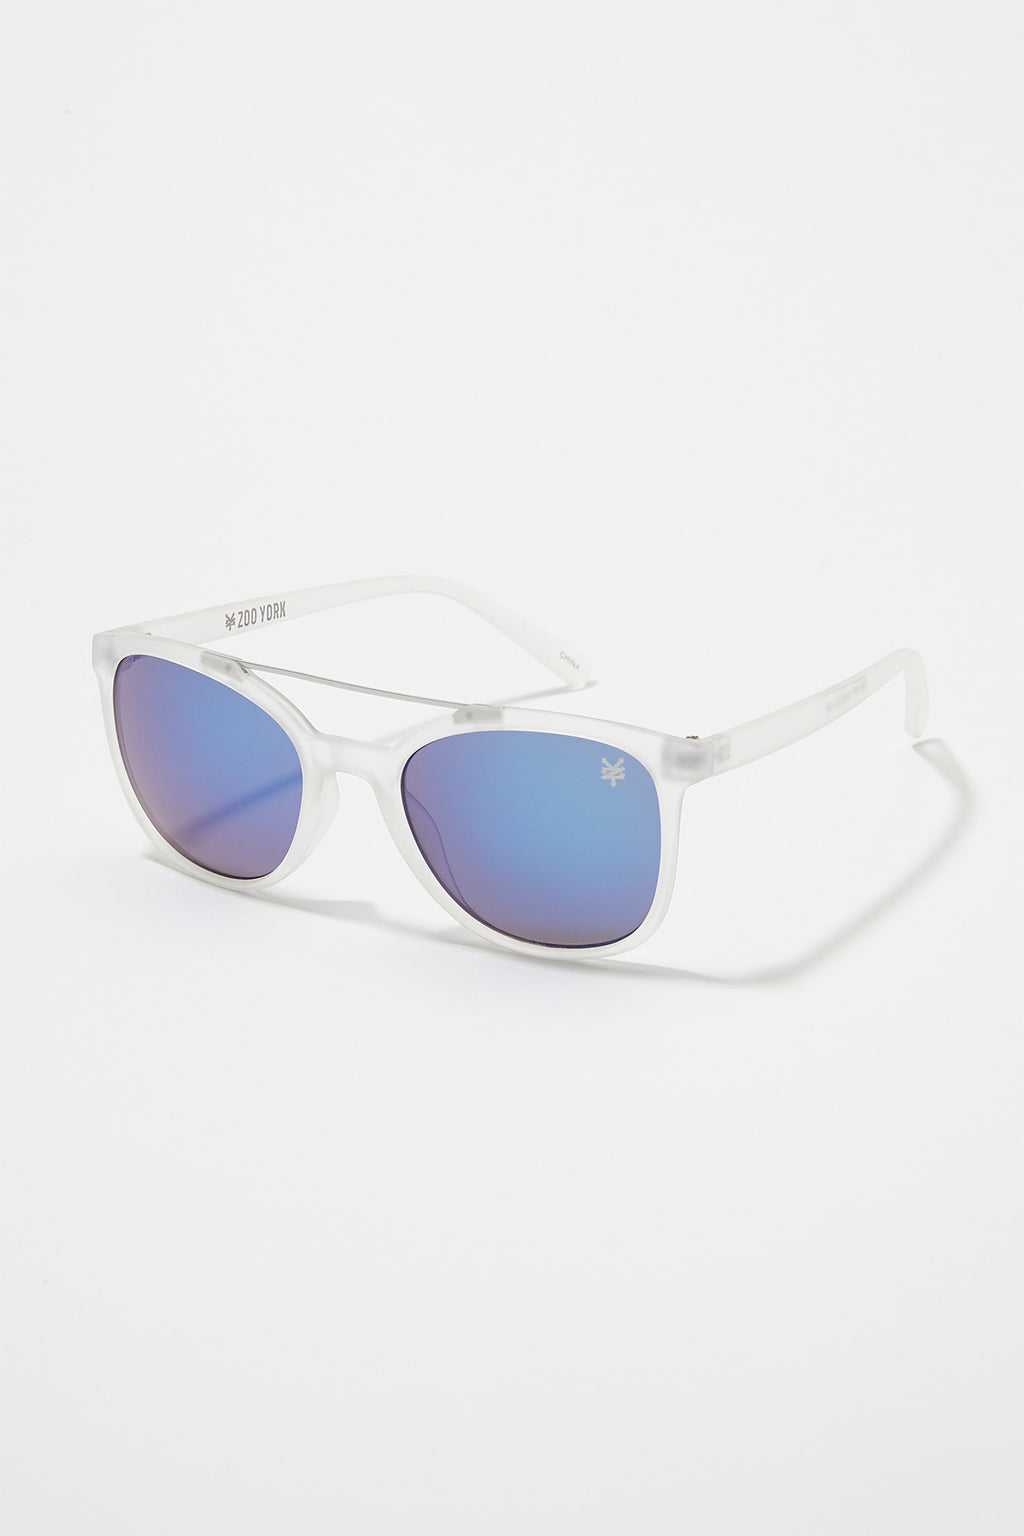 Zoo York Mens Revo Novelty Sunglasses